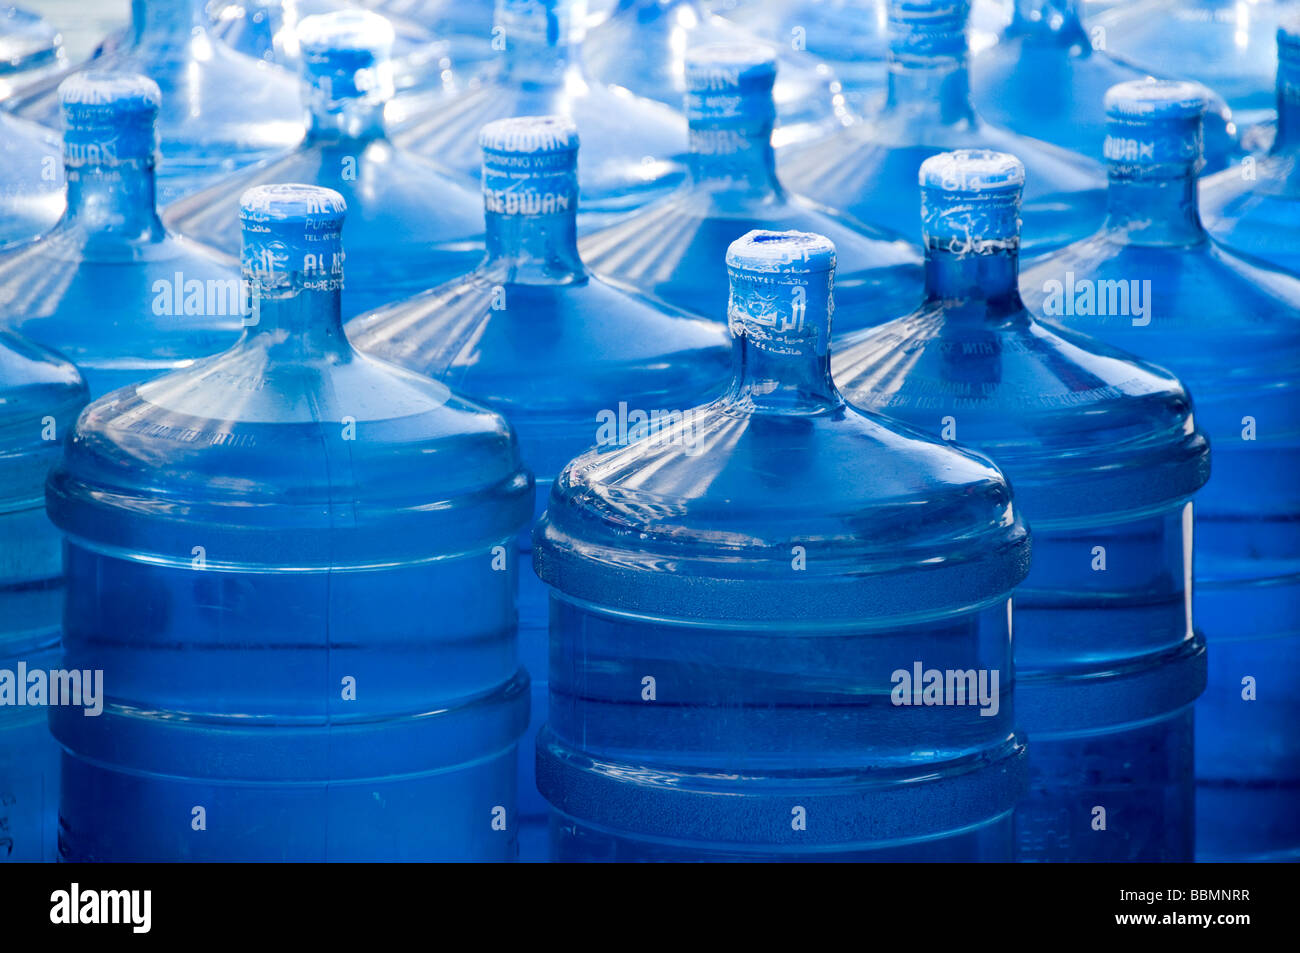 Spring water bottles Dubai - Stock Image